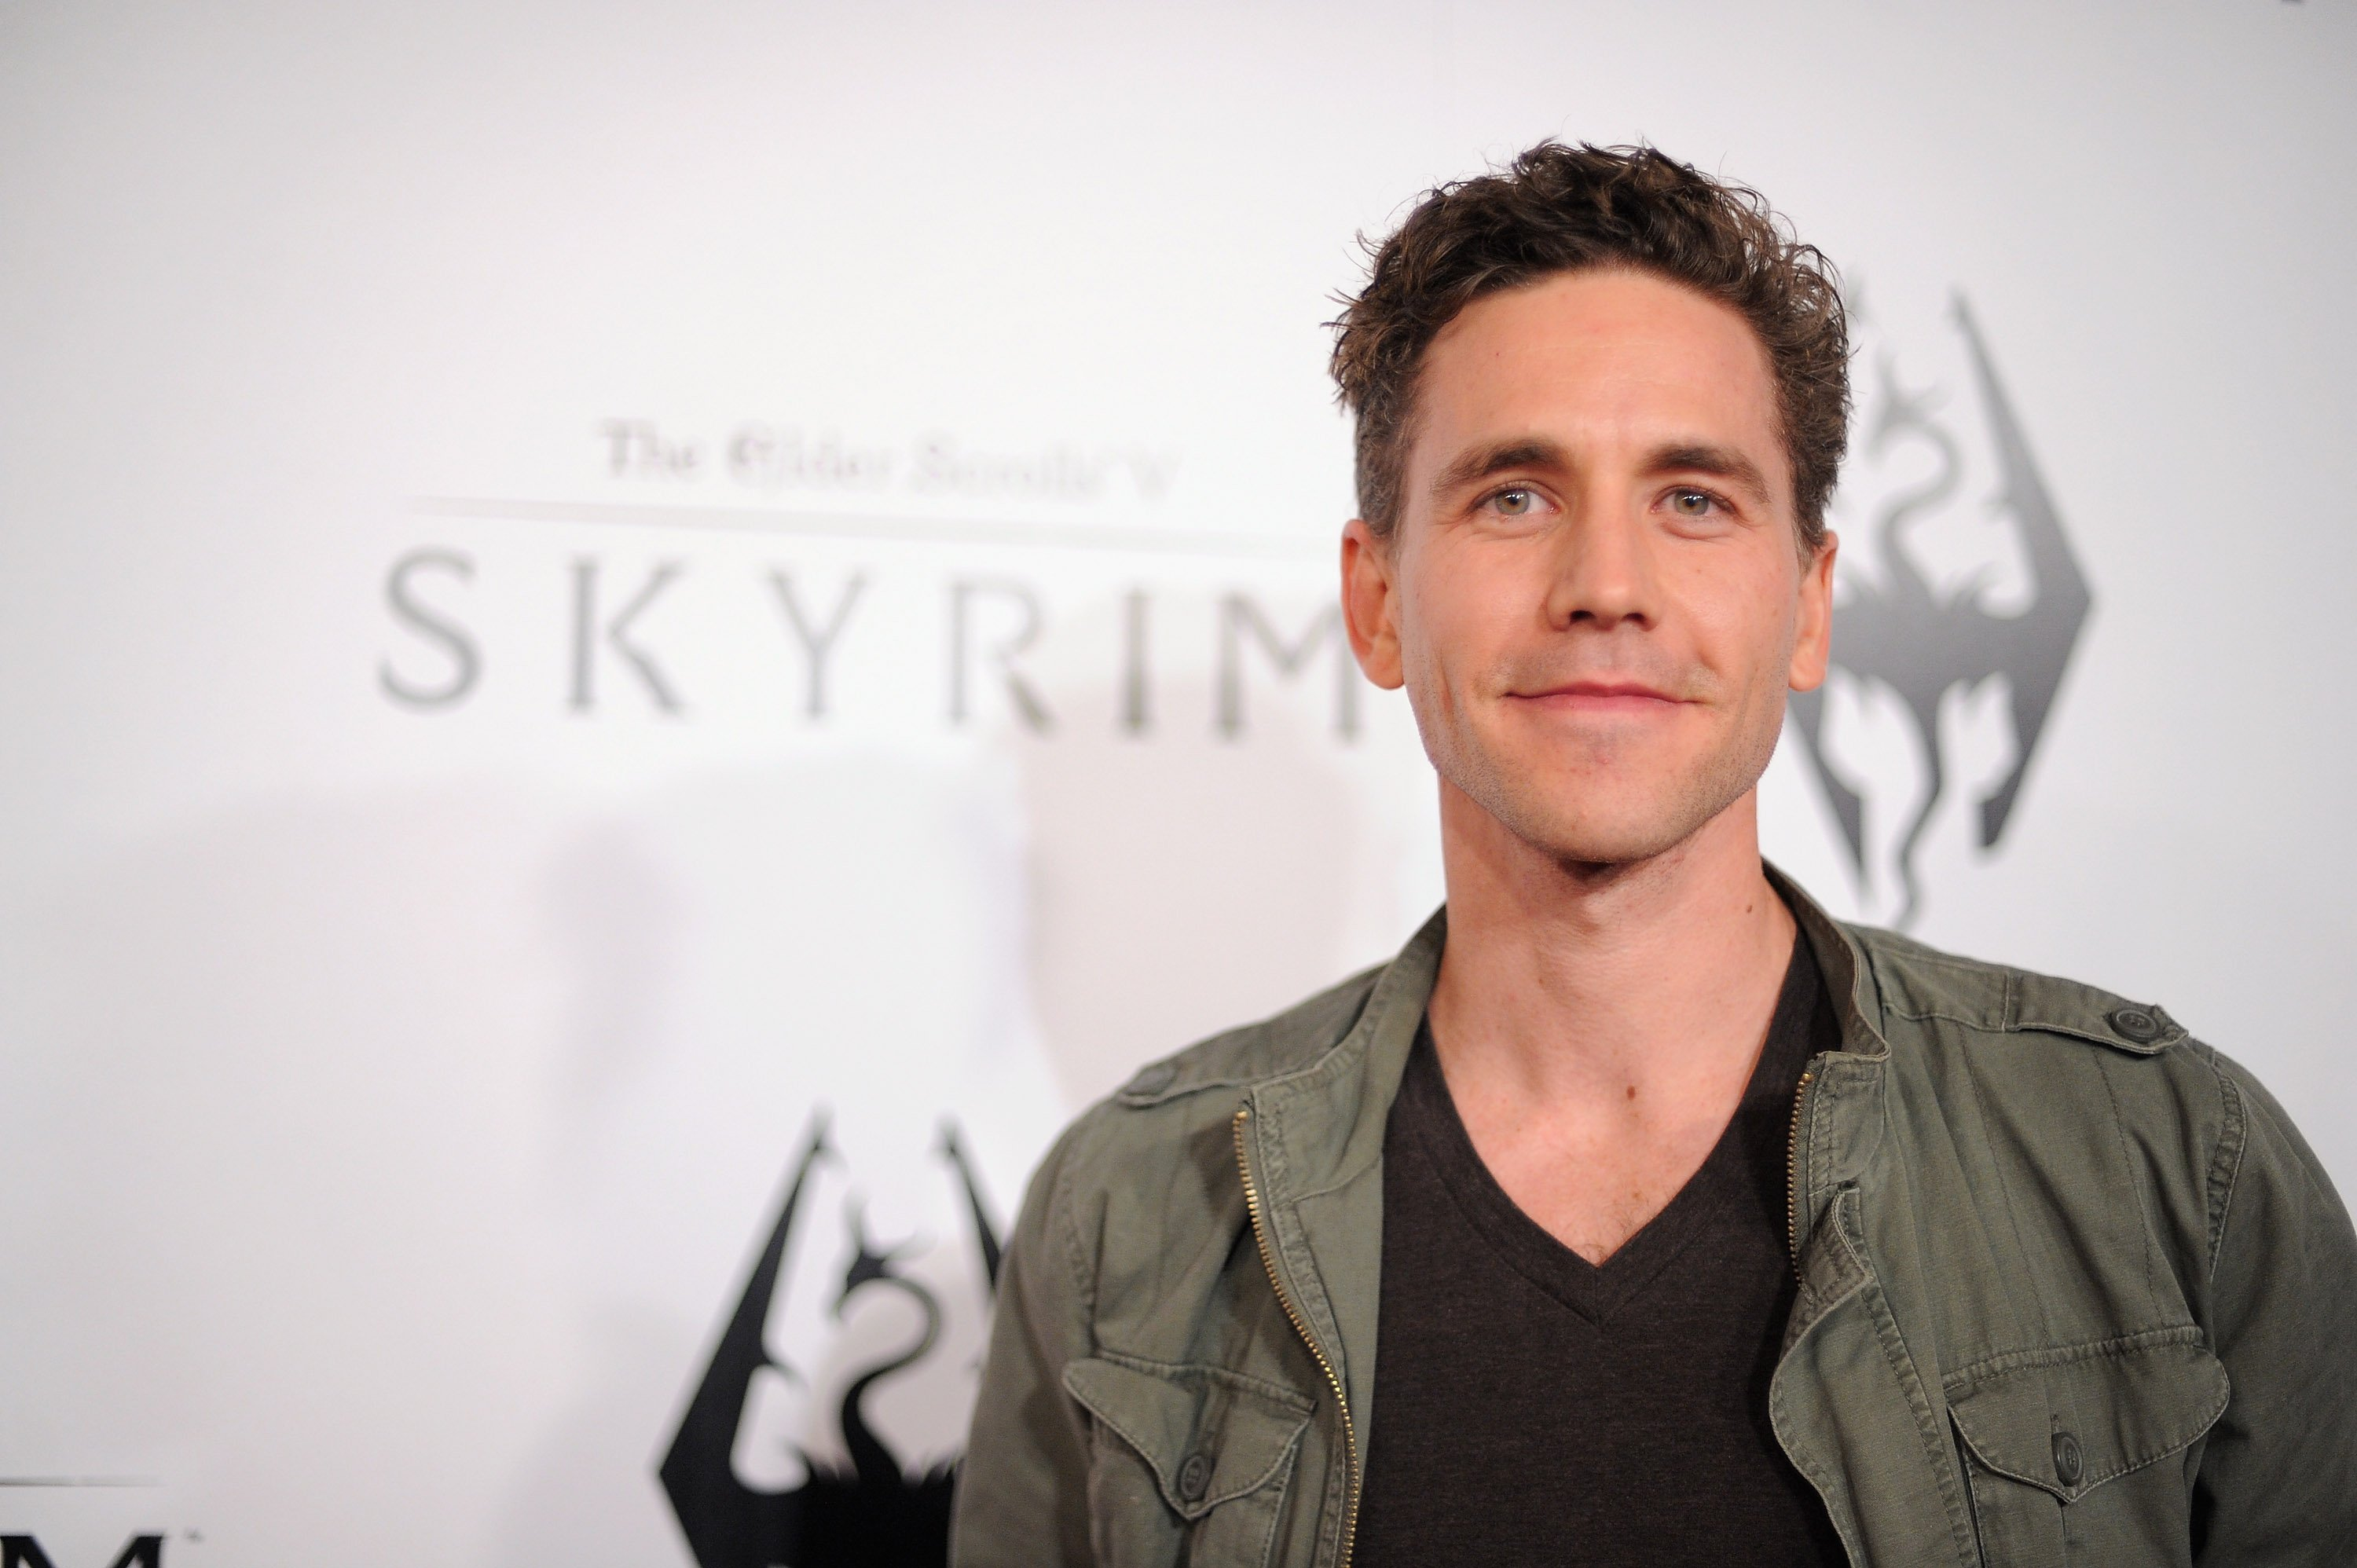 Brian Dietzen attending the official launch party for The Elder Scrolls V: Skyrim. Source | Photo: Getty Images